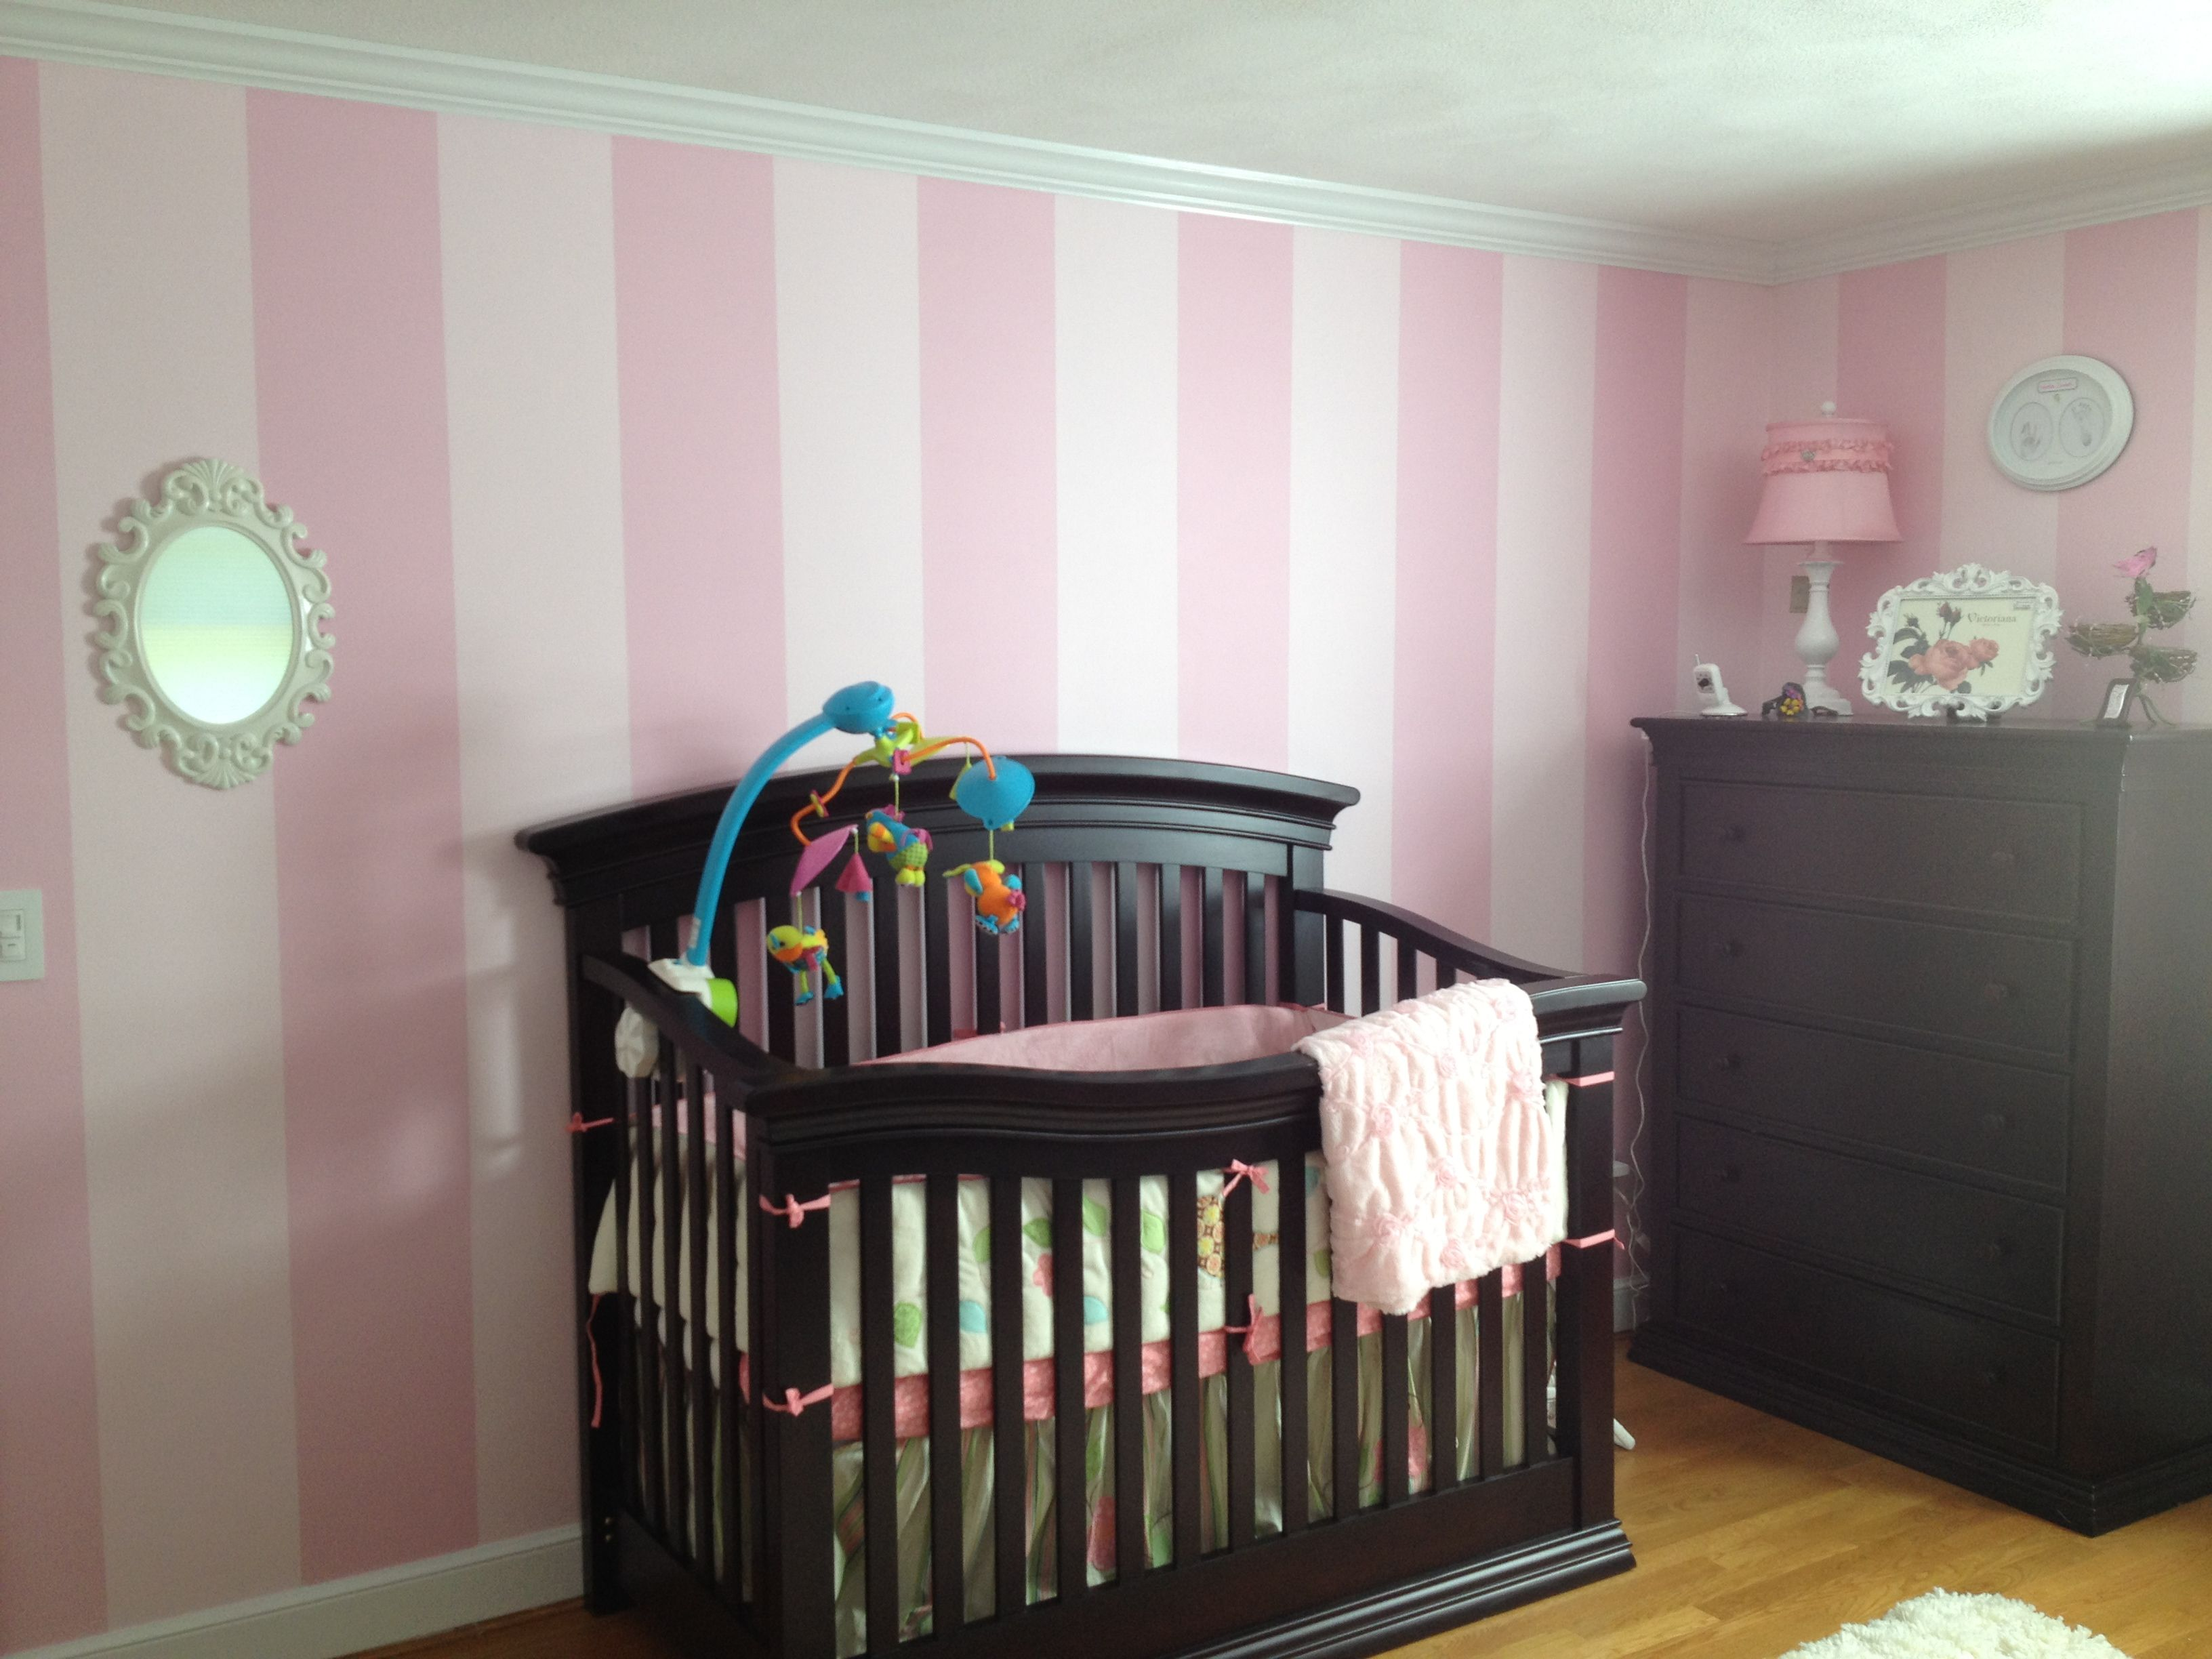 Valentina S Pink And Light Pink Striped Nursery Dark Furniture And White Baroque Accents Kid Room Decor Striped Nursery Light Pink Walls